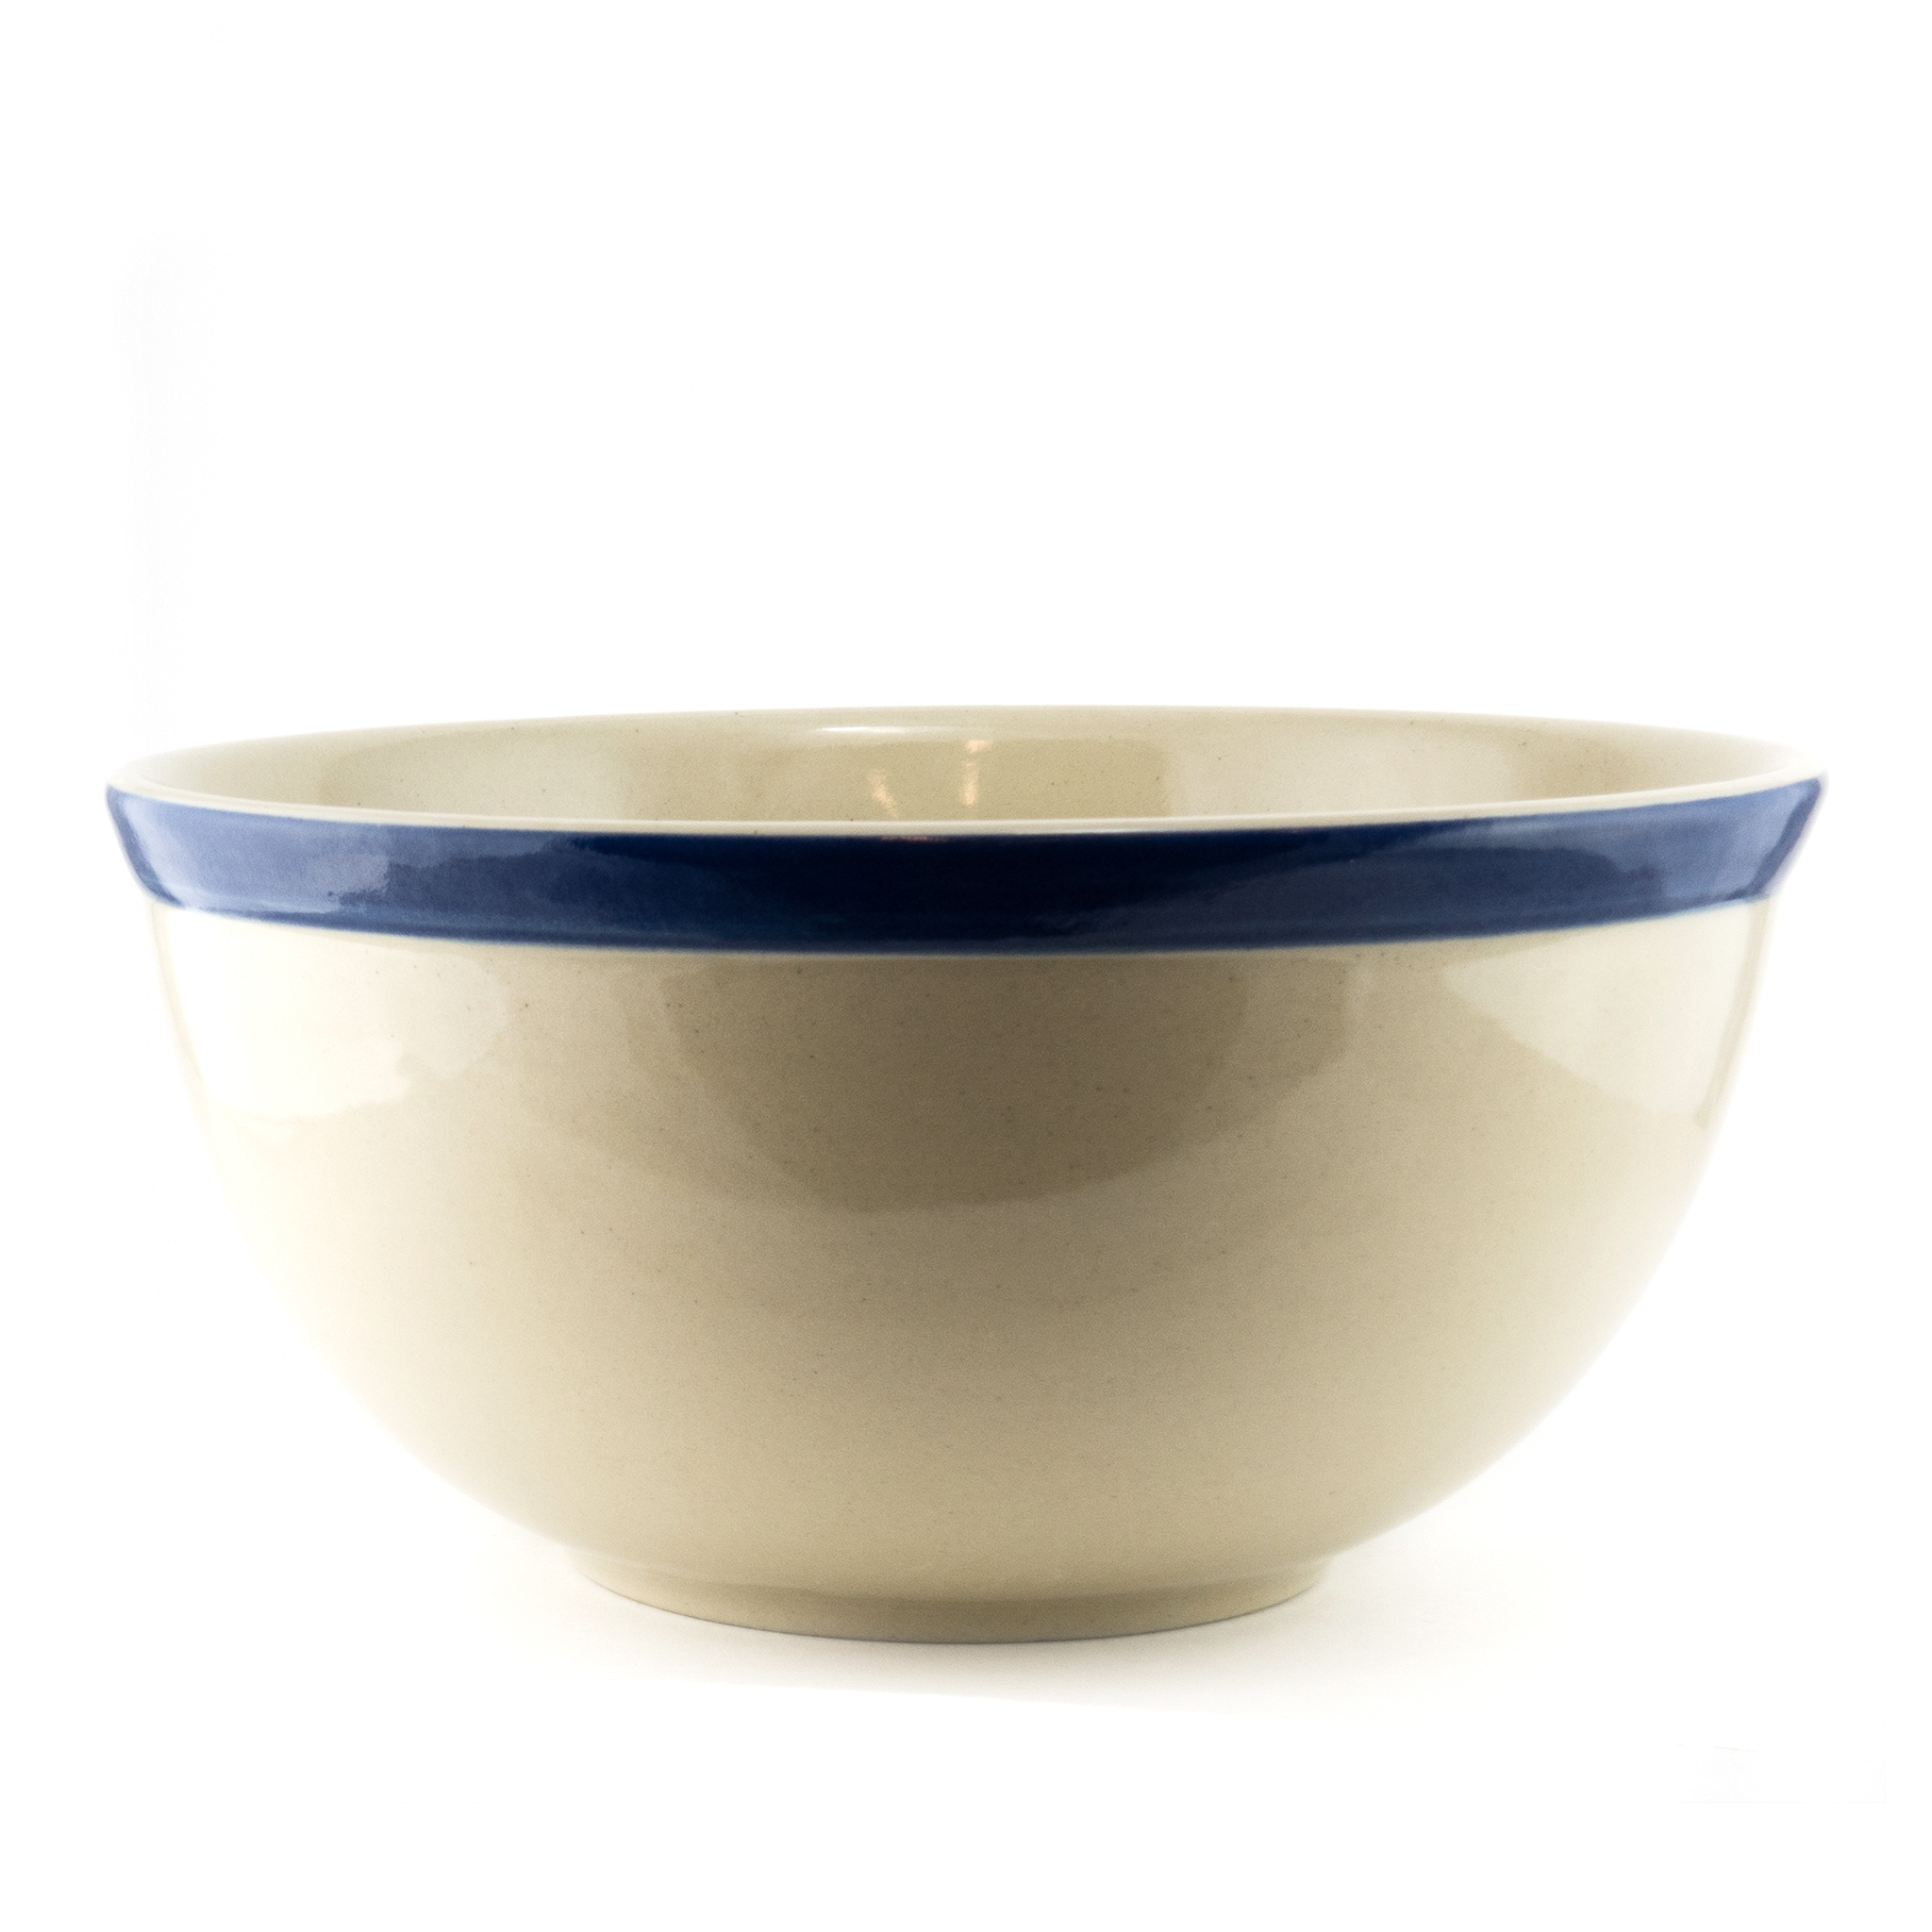 Medalta Ware Reproduction Bowls